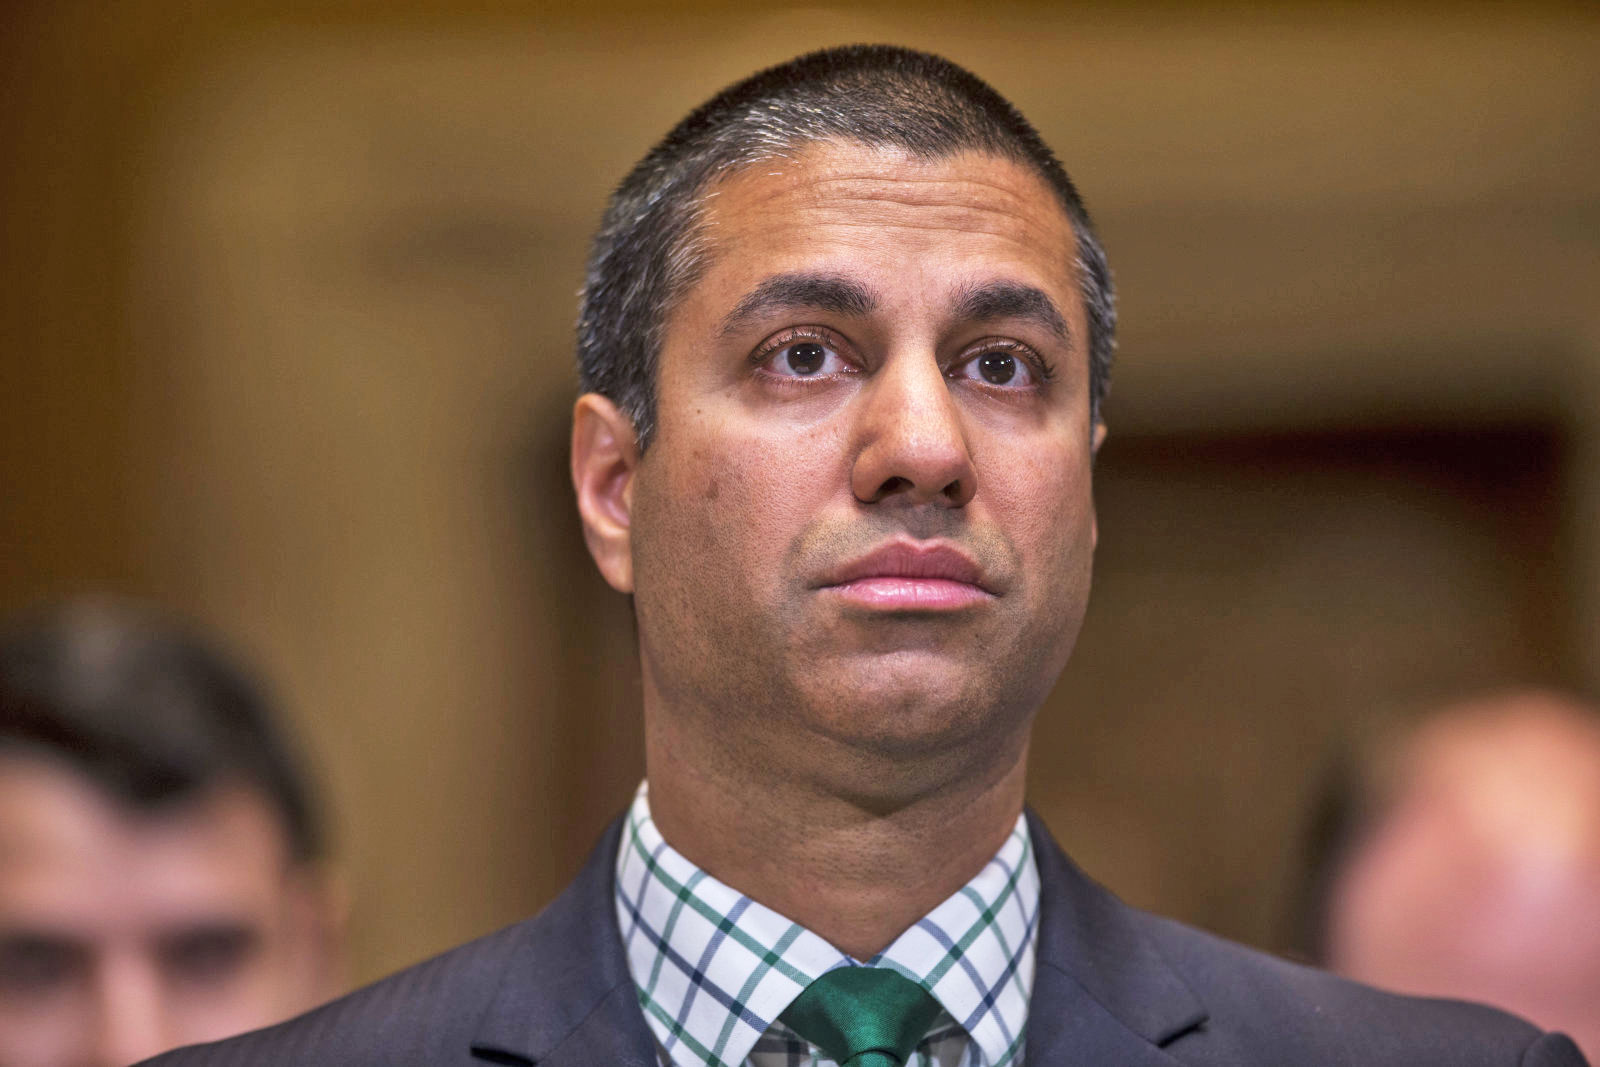 Lawmakers ask Ajit Pai about false DDoS claims